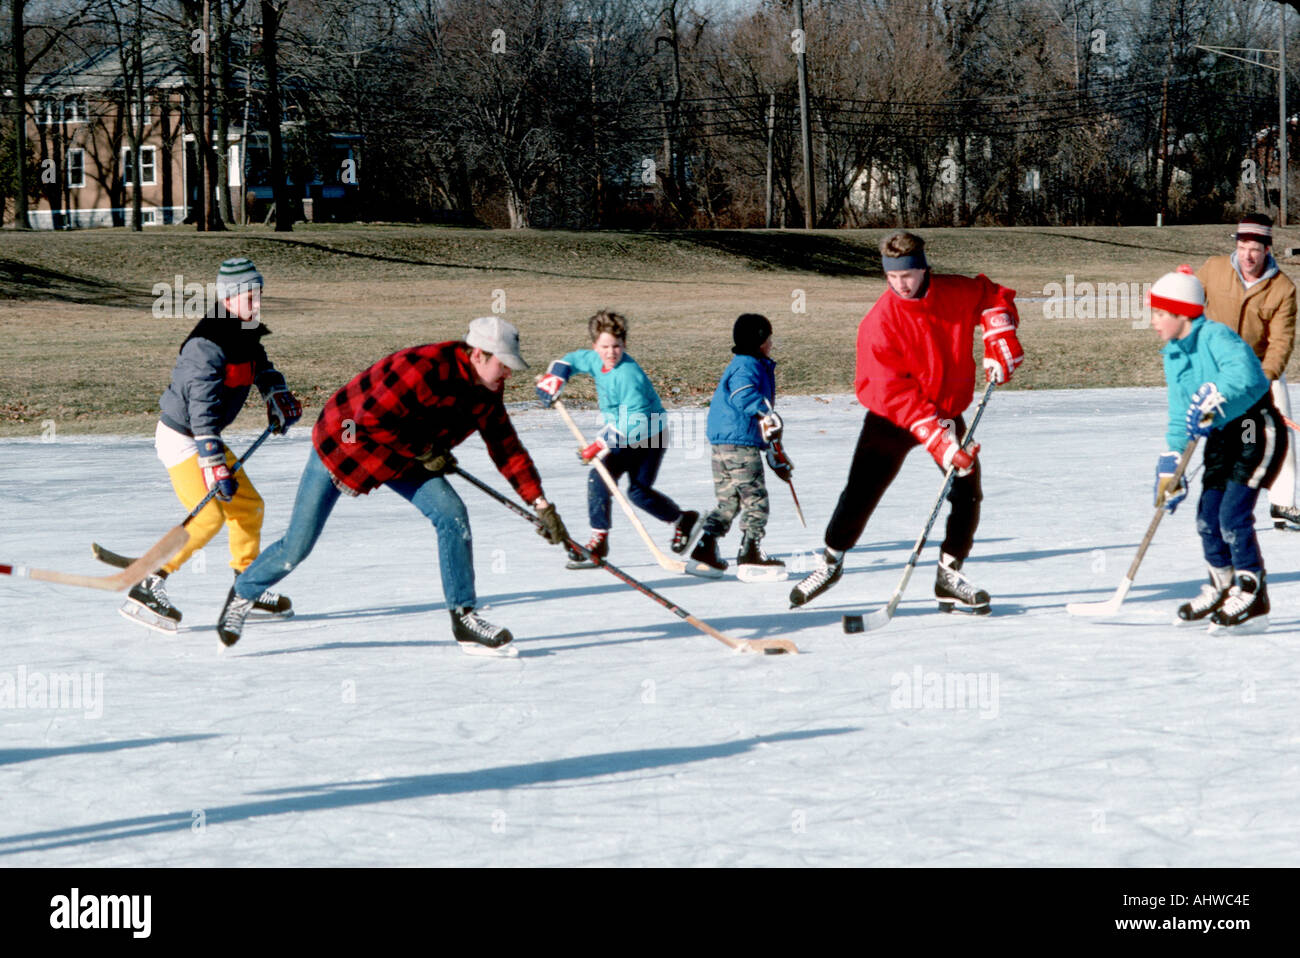 Sandlot hockey is a favorite winter sport in many northern states Michigan - Stock Image